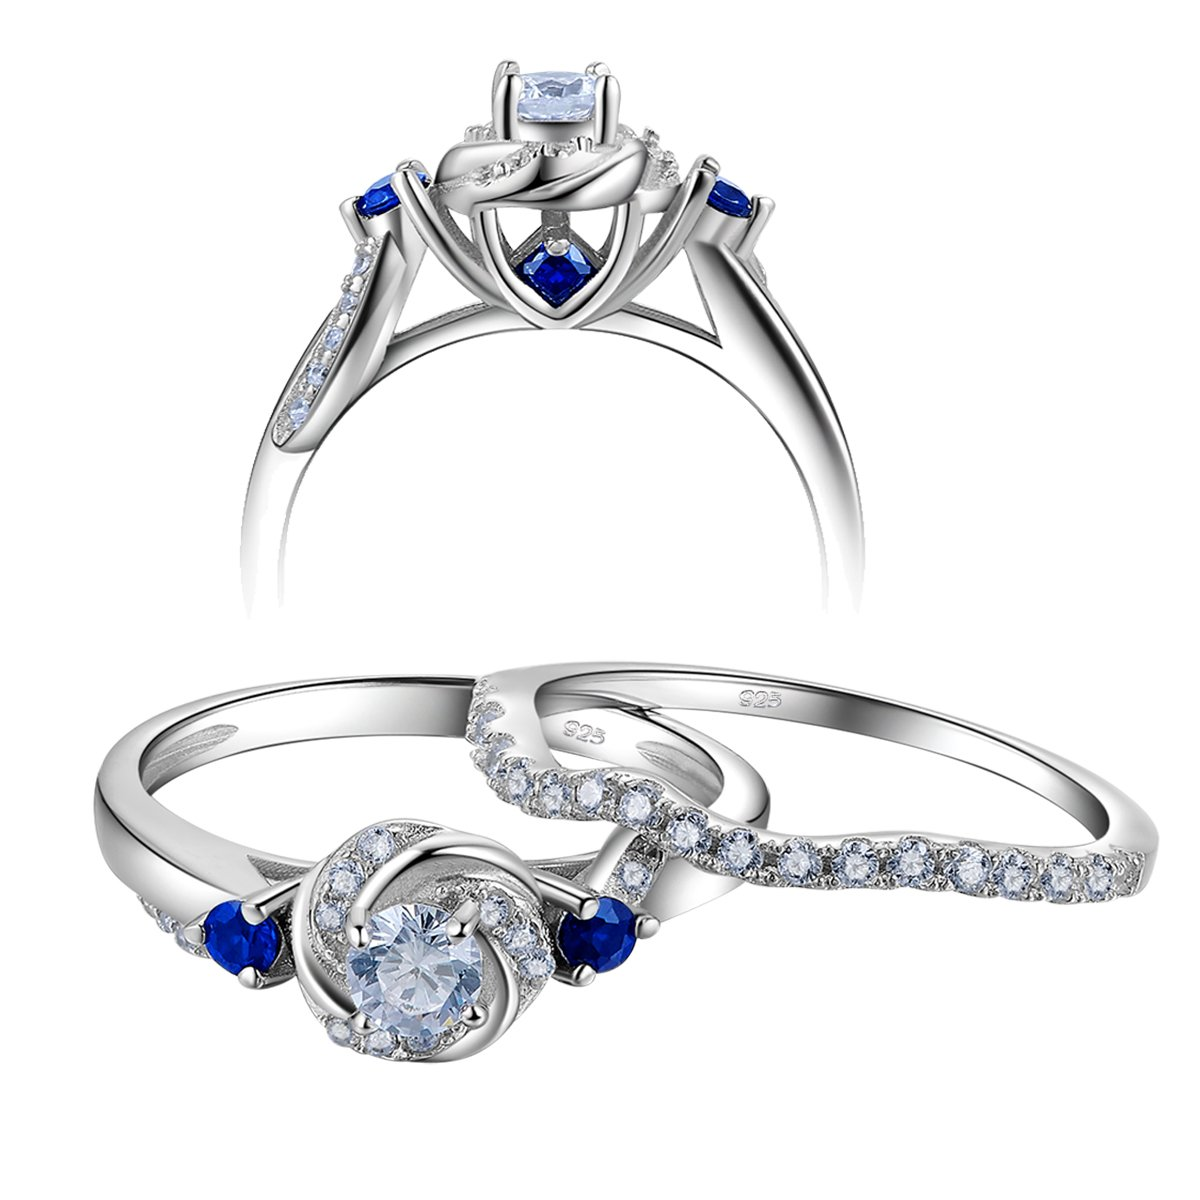 Newshe Engagement Wedding Ring Set For Women 925 Sterling Silver 0.8ct Round White Cz Blue Size 9